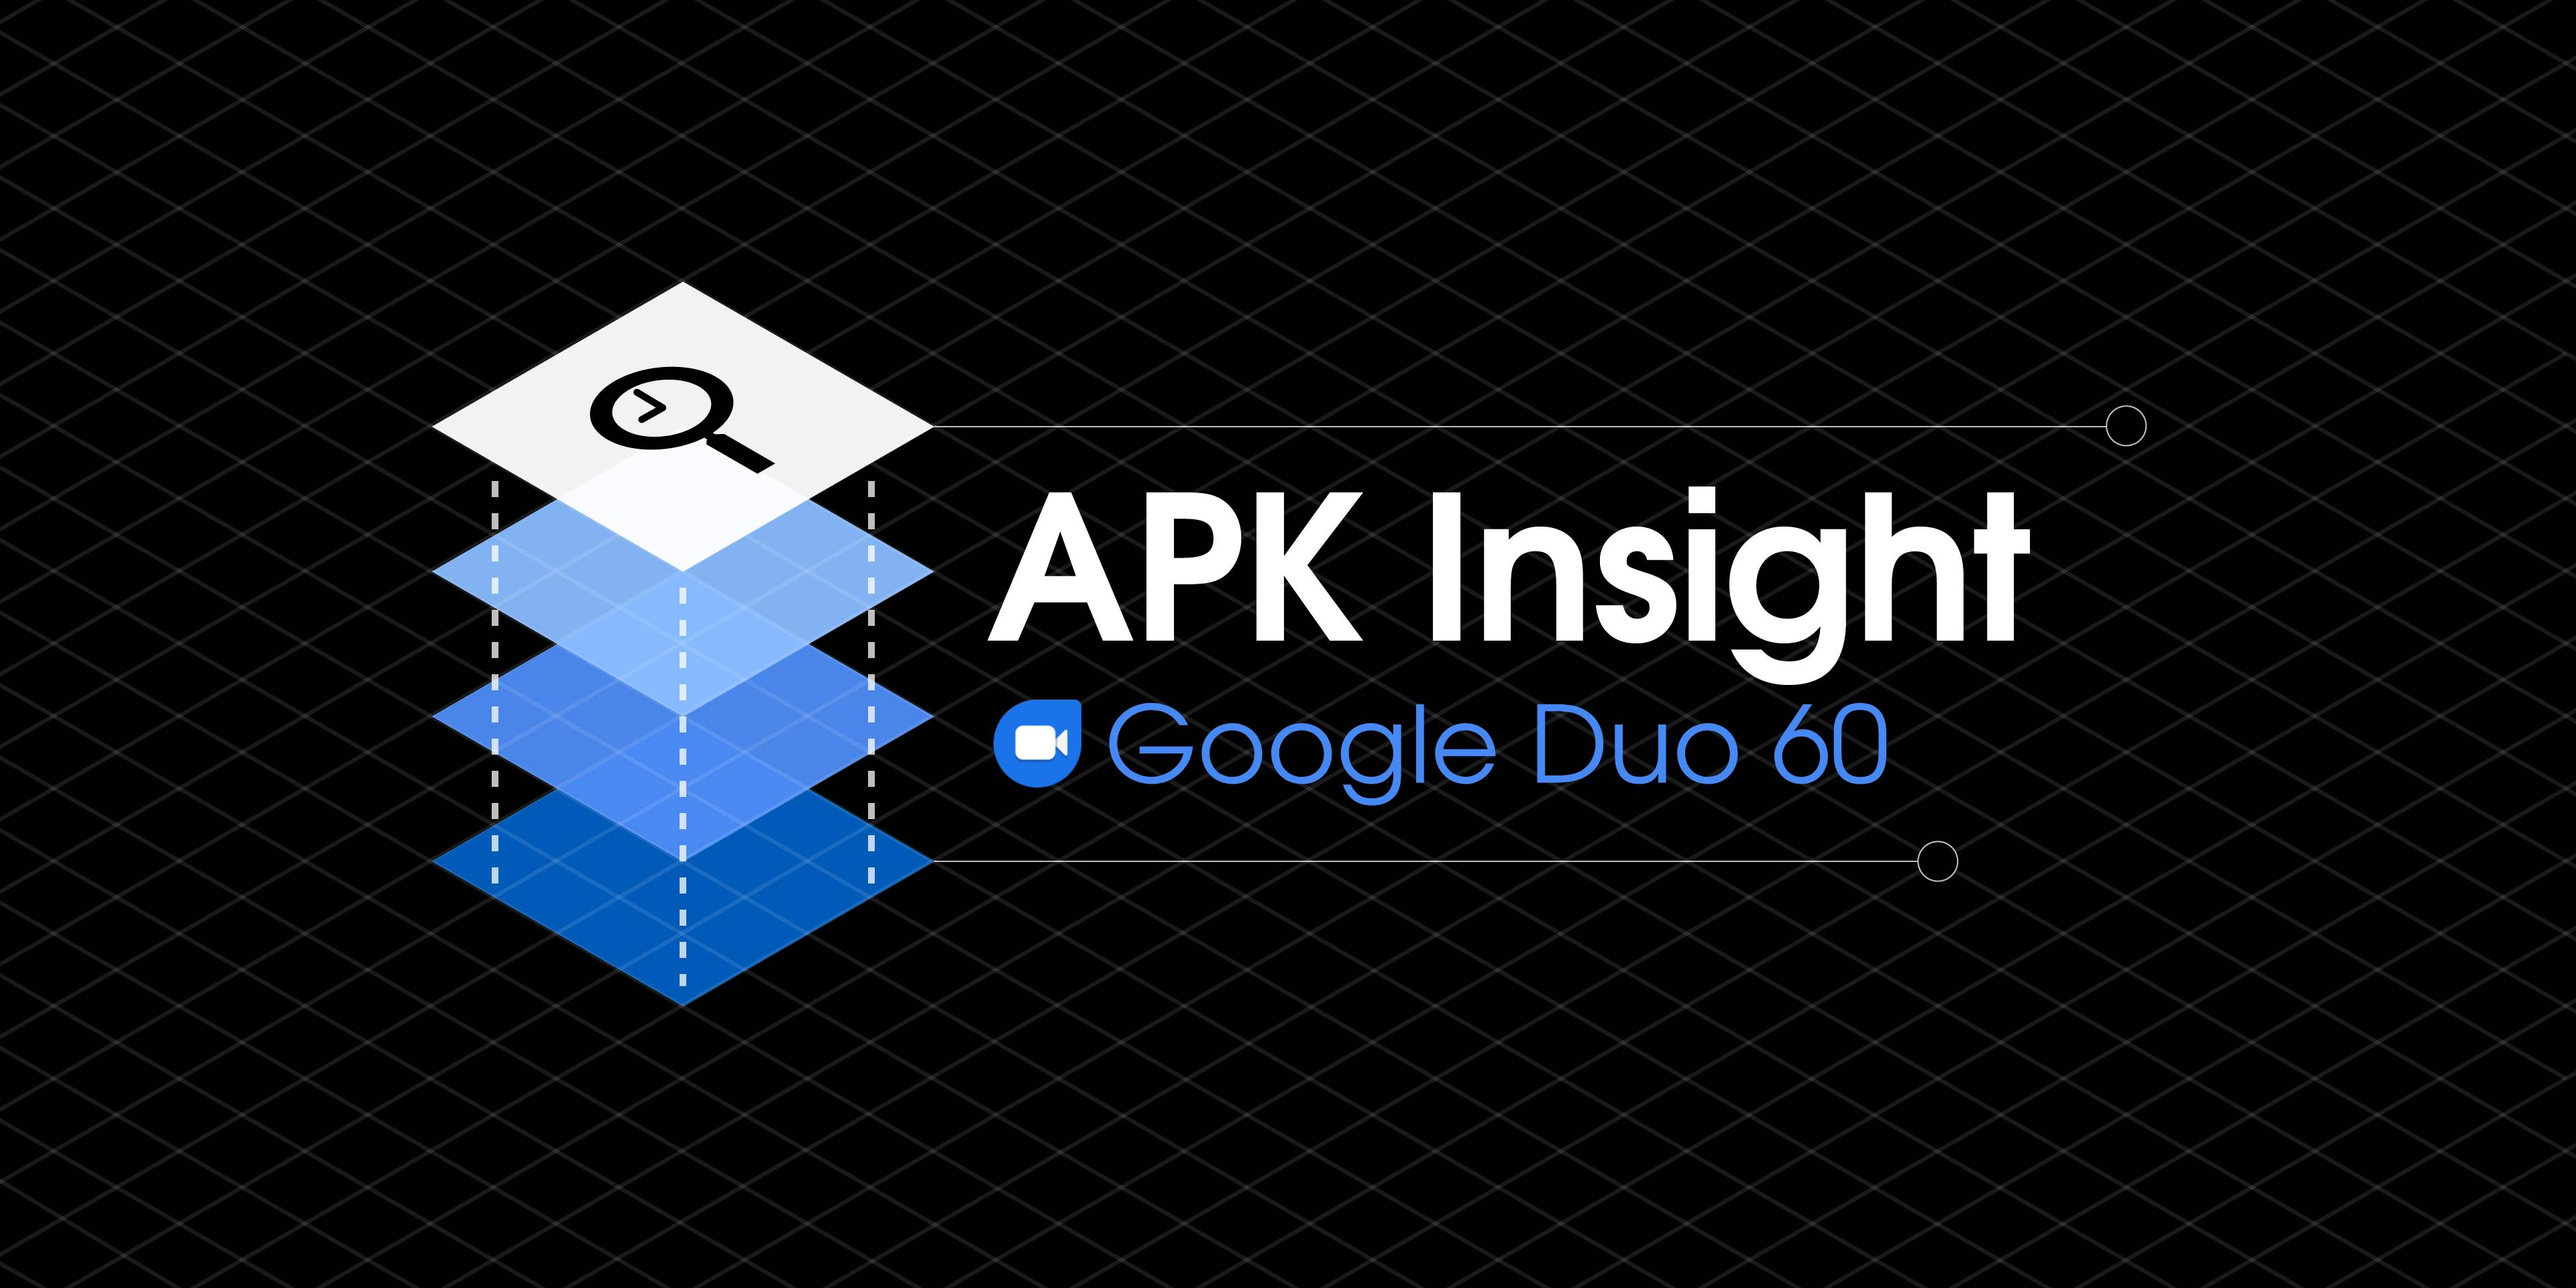 Google Duo 60 preps dark mode, adds deleting call history [APK Insight]